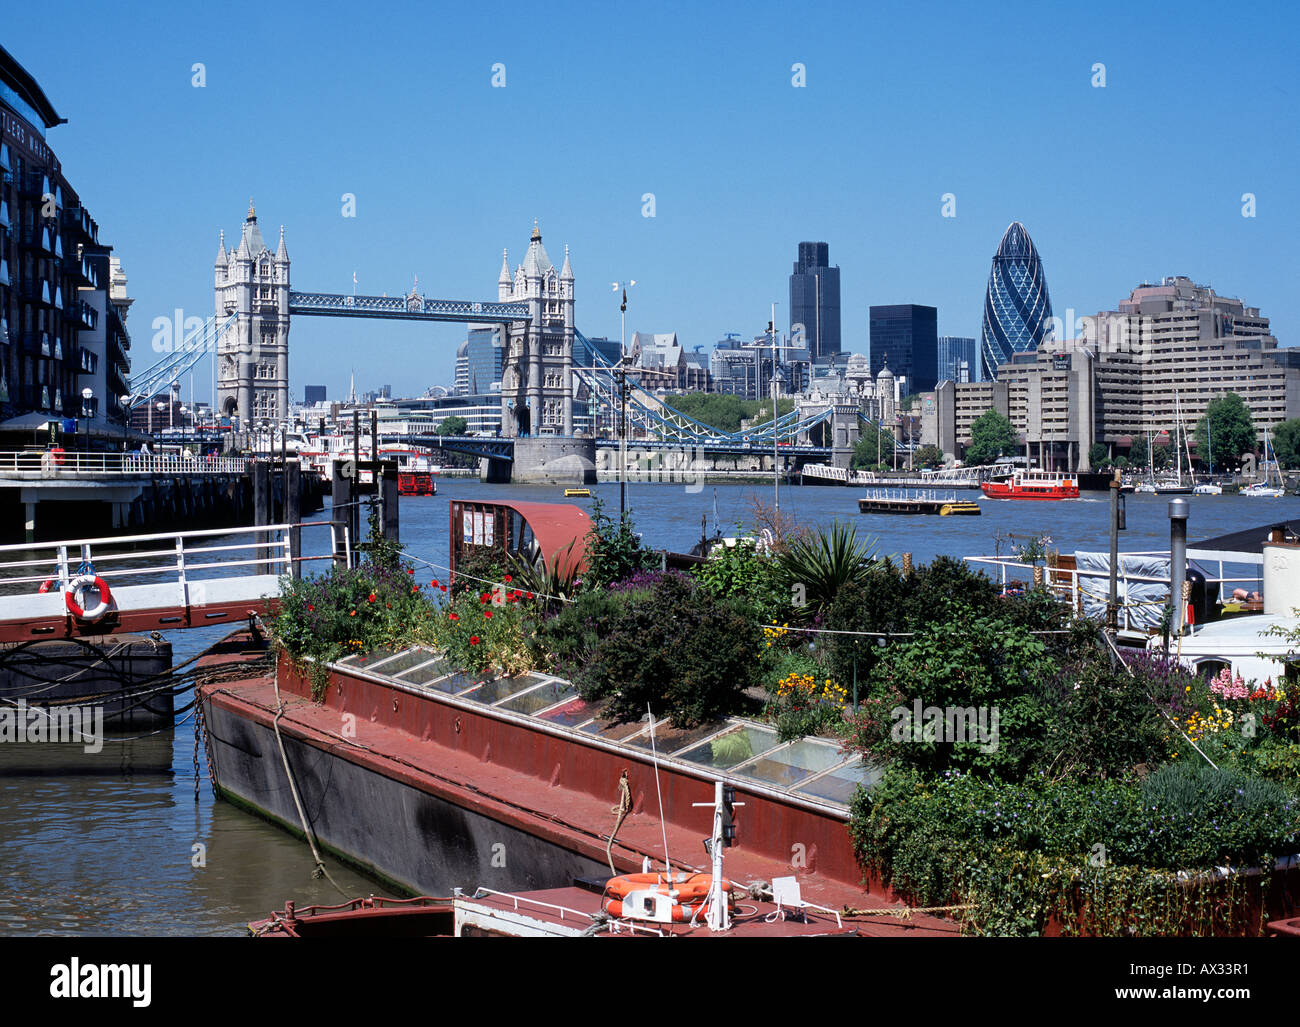 Houseboats moored in the Thames at Tower Bridge London Stock Photo